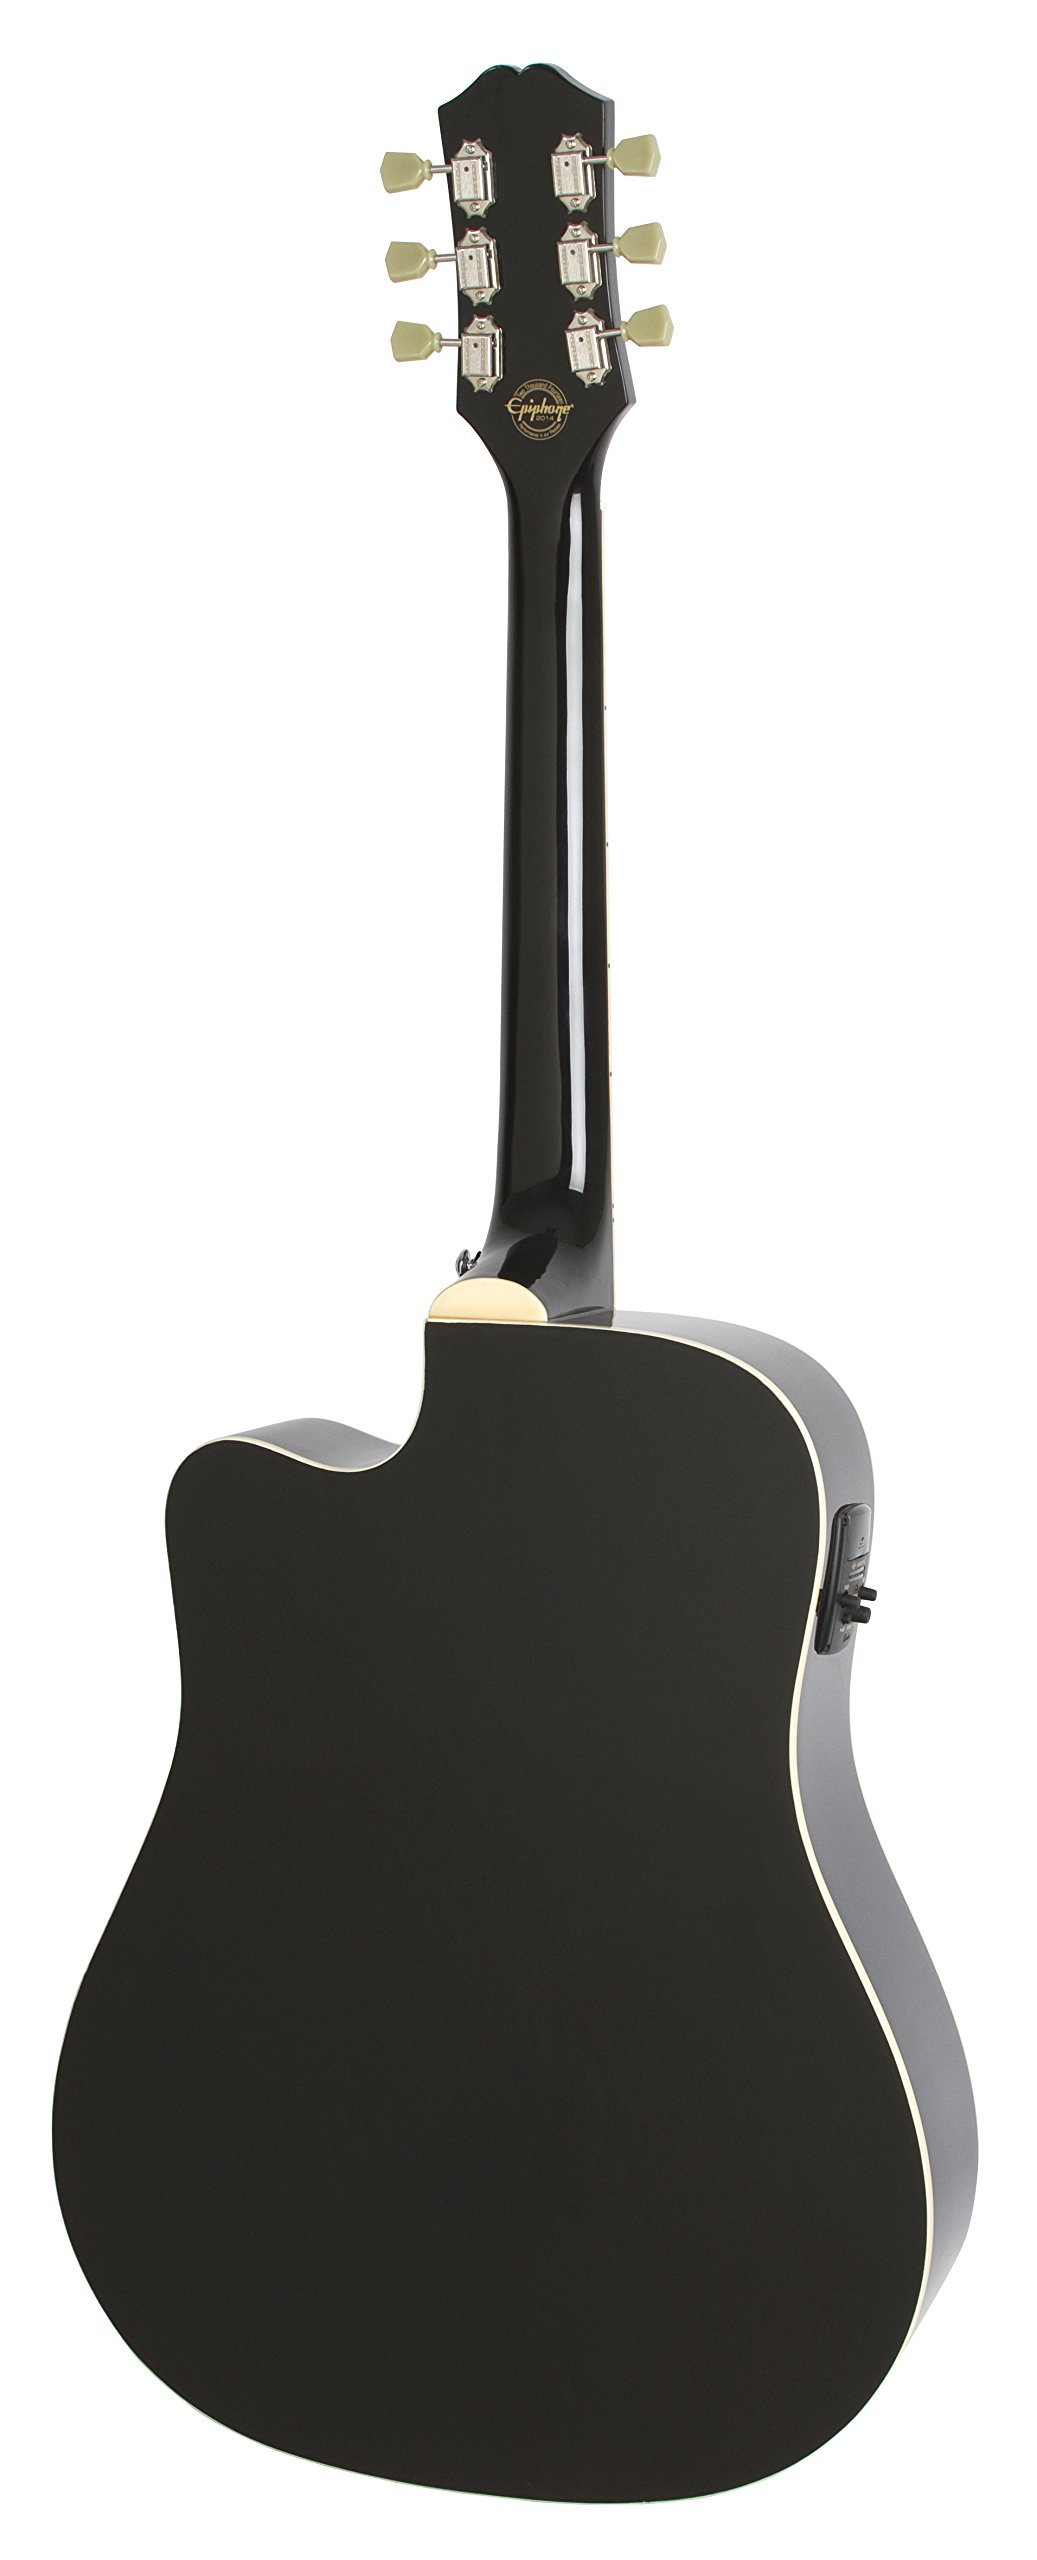 Epiphone Pro-1 Ultra Solid Top Acoustic/Electric Guitar System for Beginners, Gloss Ebony